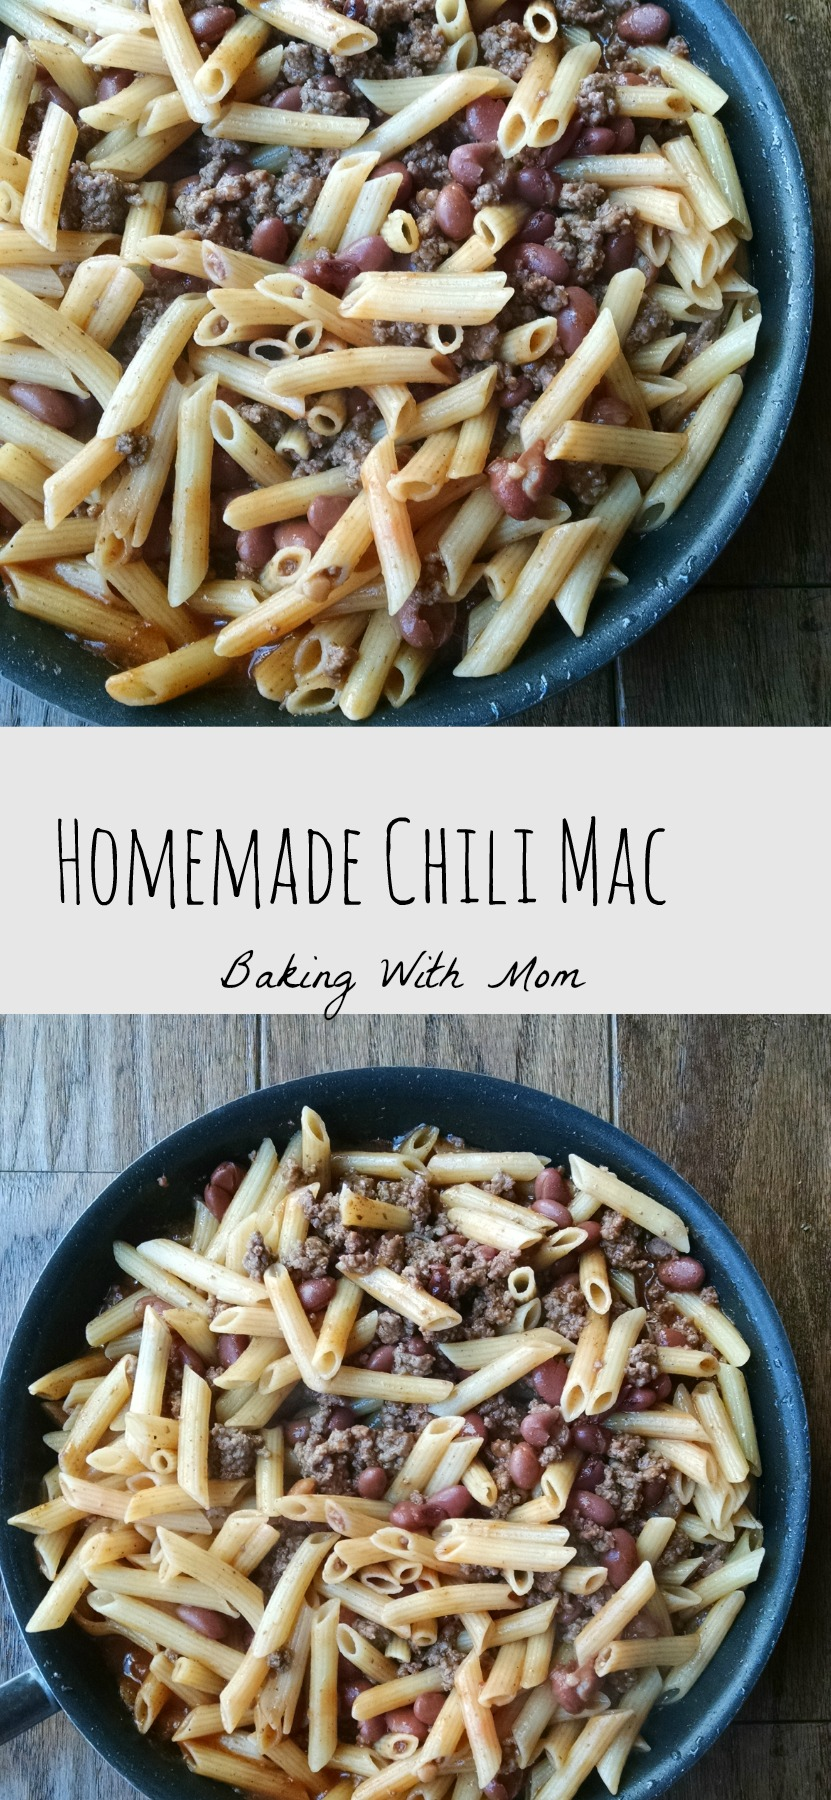 Homemade Chili Mac forget the boxed kind, loaded with hamburger, beans, pasta this 30 minute meal your family will love